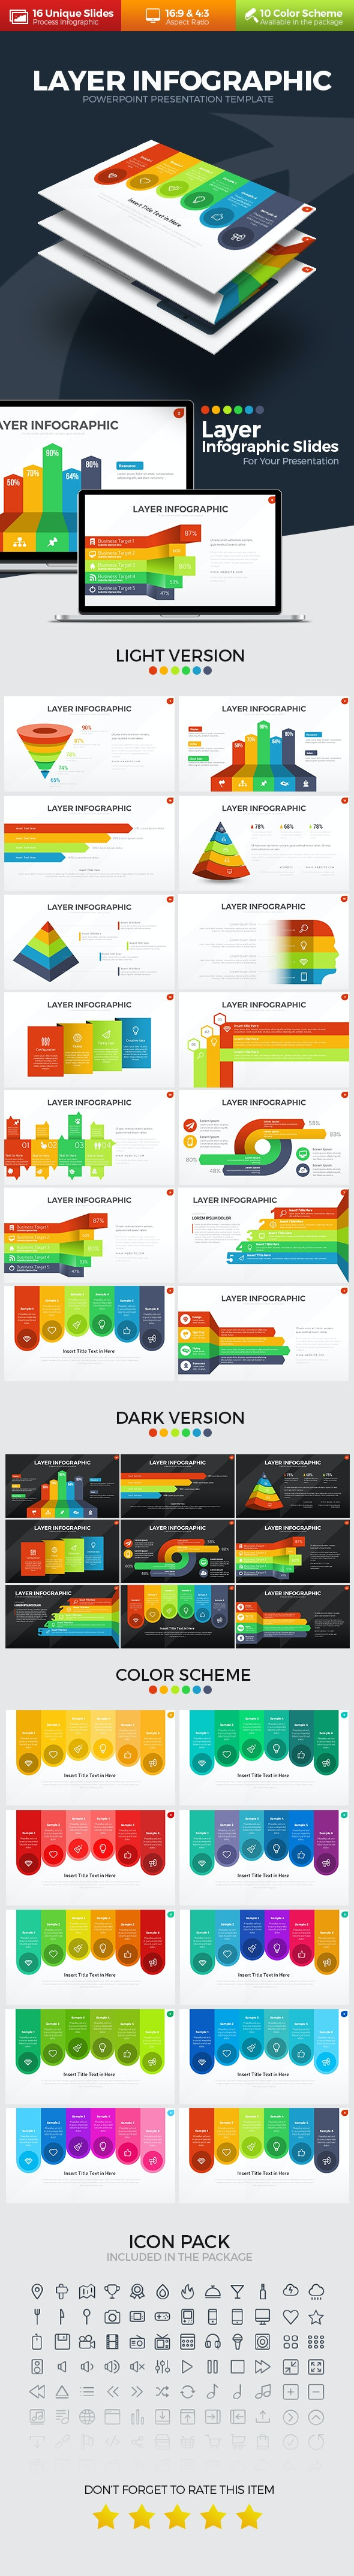 Layer Infographic PowerPoint Template - Business PowerPoint Templates